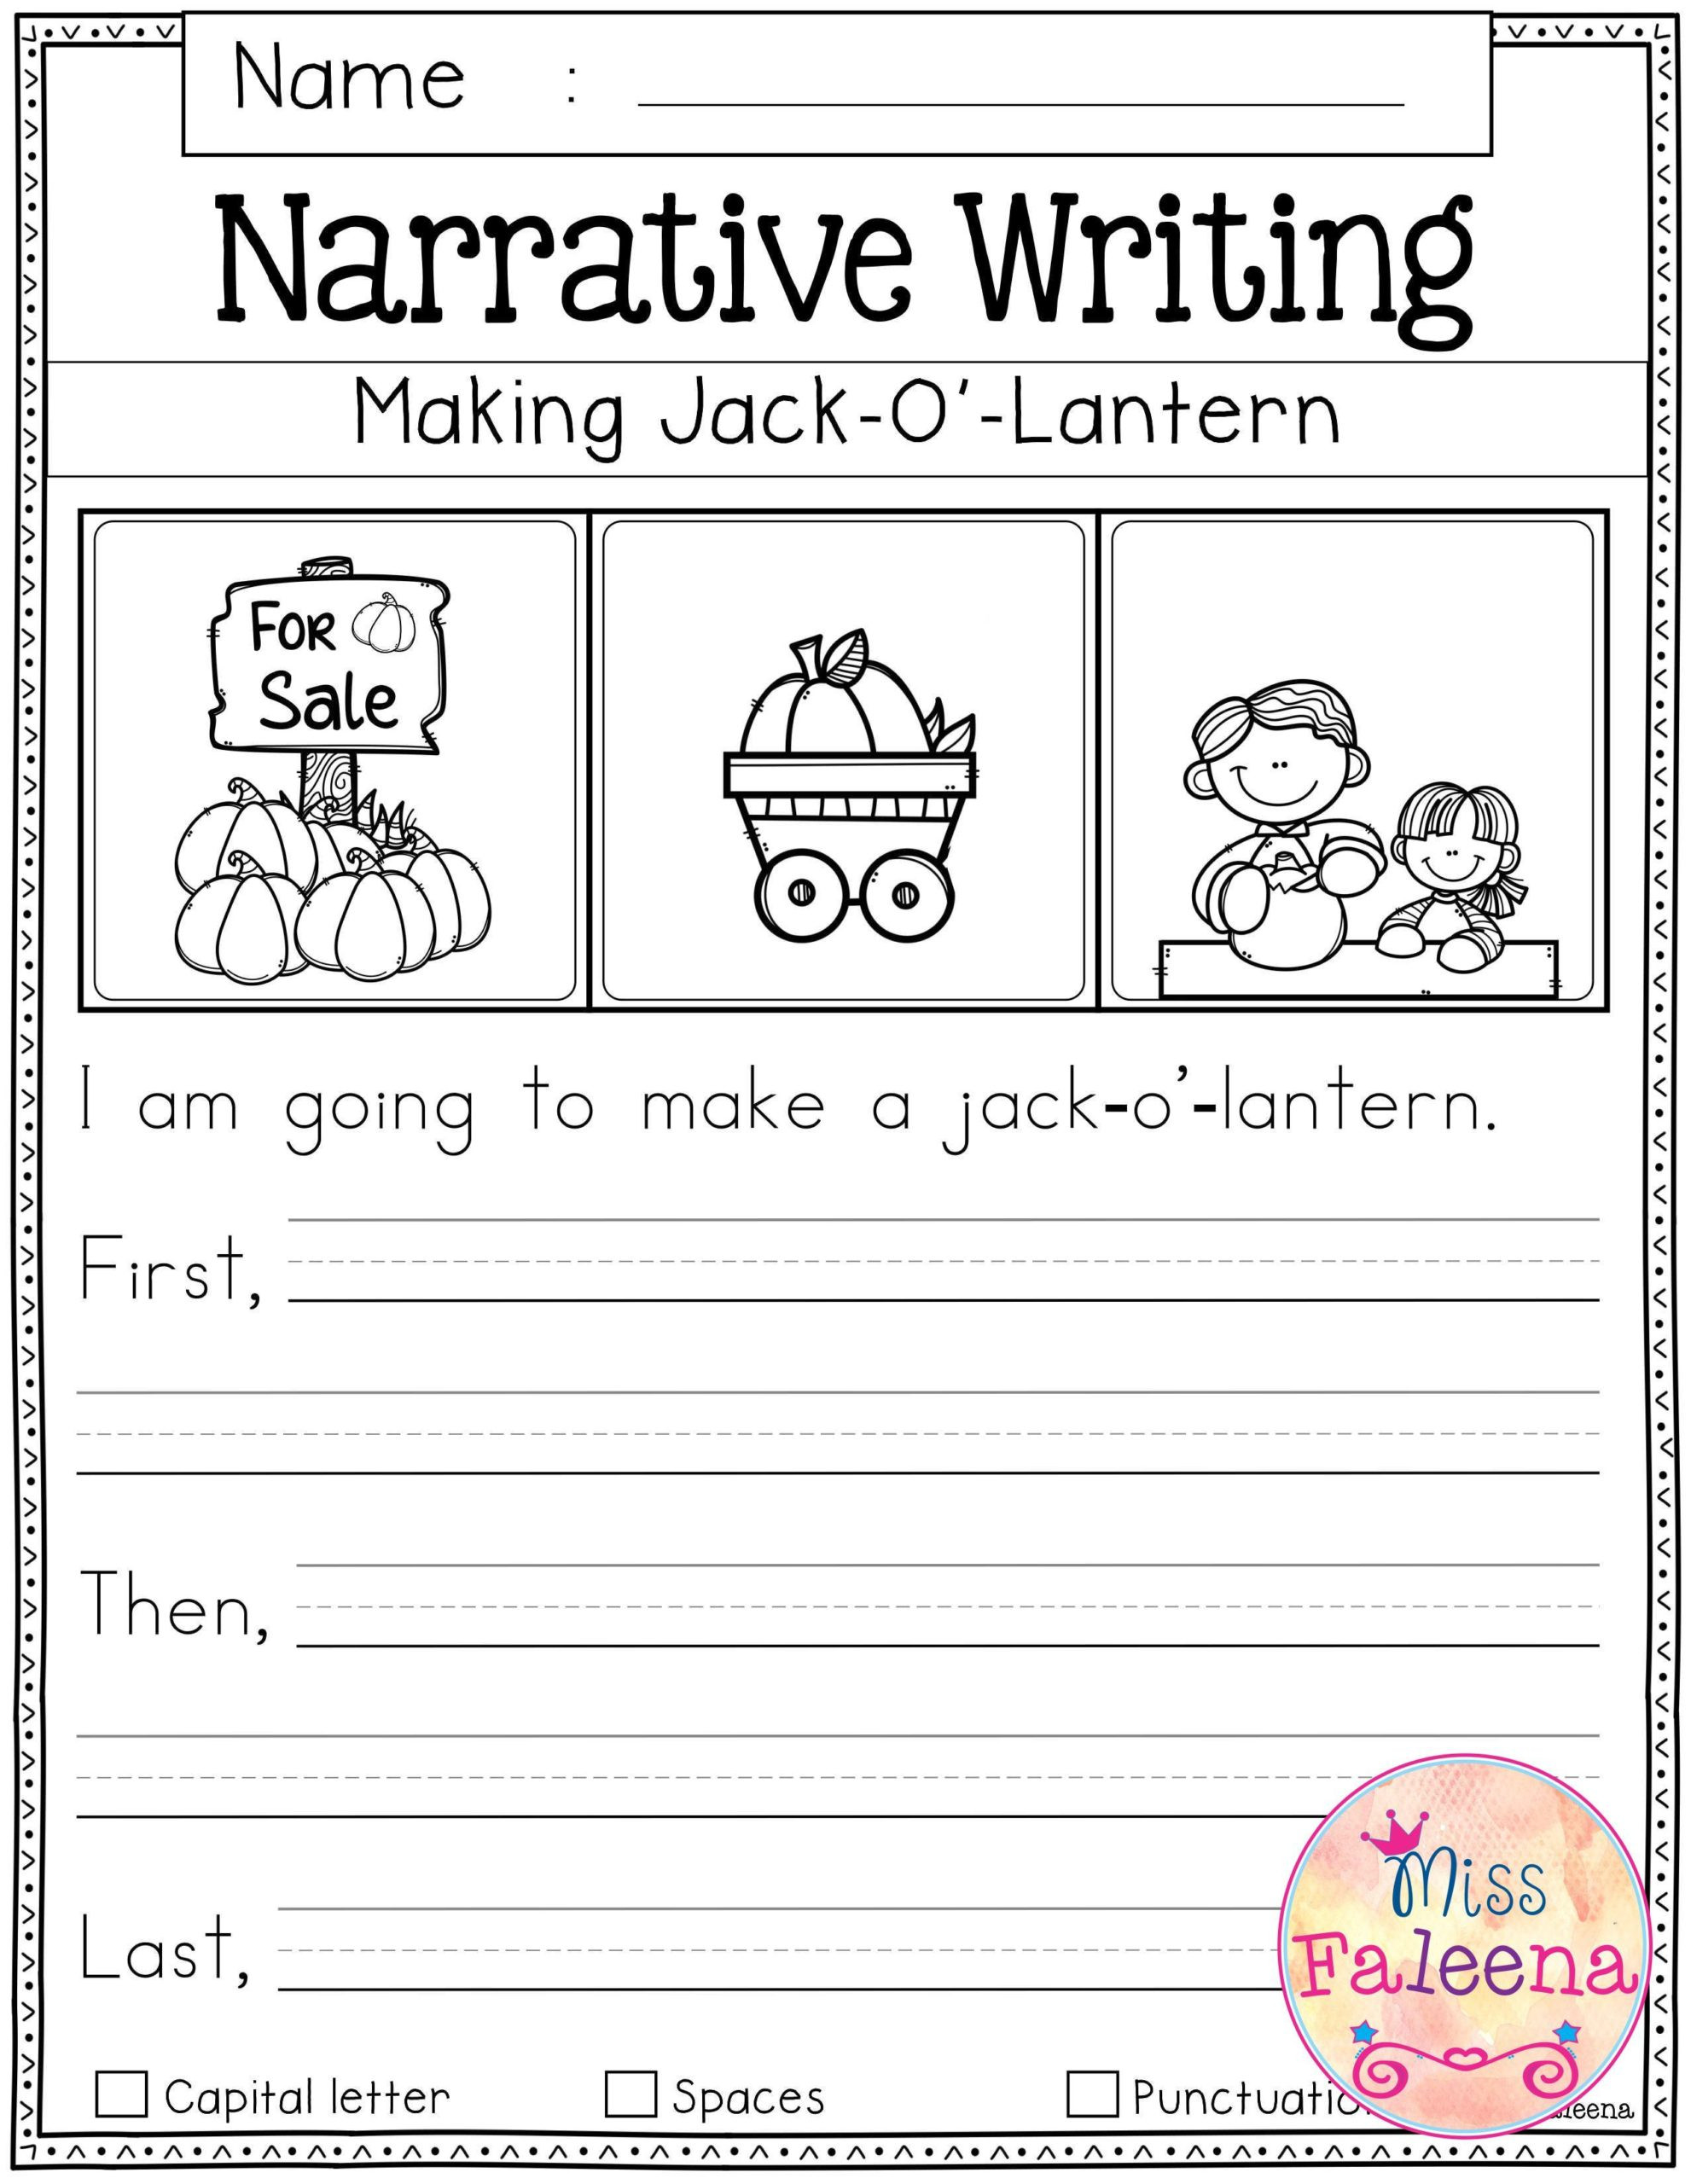 Free Printable Story Sequencing Worksheets Worksheet Pre English Project Munity Helpers for